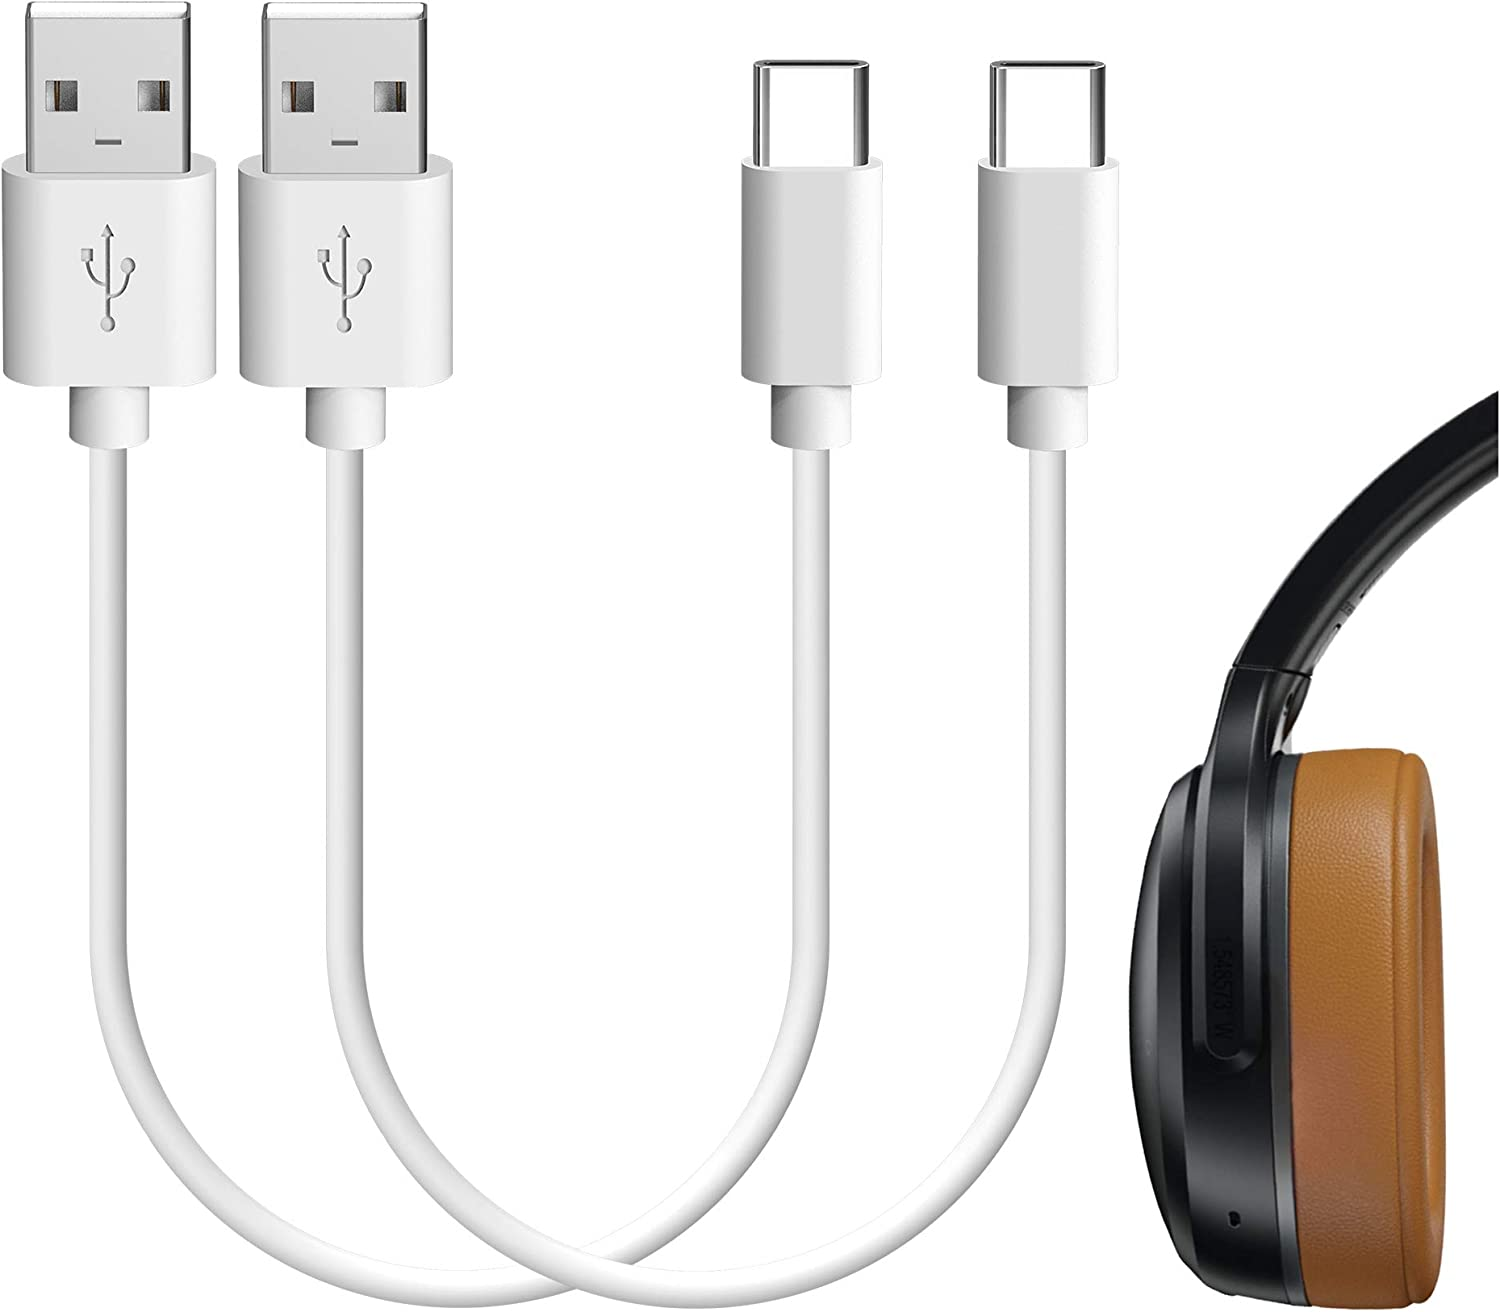 Geekria Type-C Charger Cord for Sküllcandy Indy Evo, Push, Sesh Evo, Indy Fuel True, Indy ANC, Crusher Evo, Crusher ANC/USB-A to USB-C Charging Cable for Headphones, Earbuds (White 2Pack 1FT)